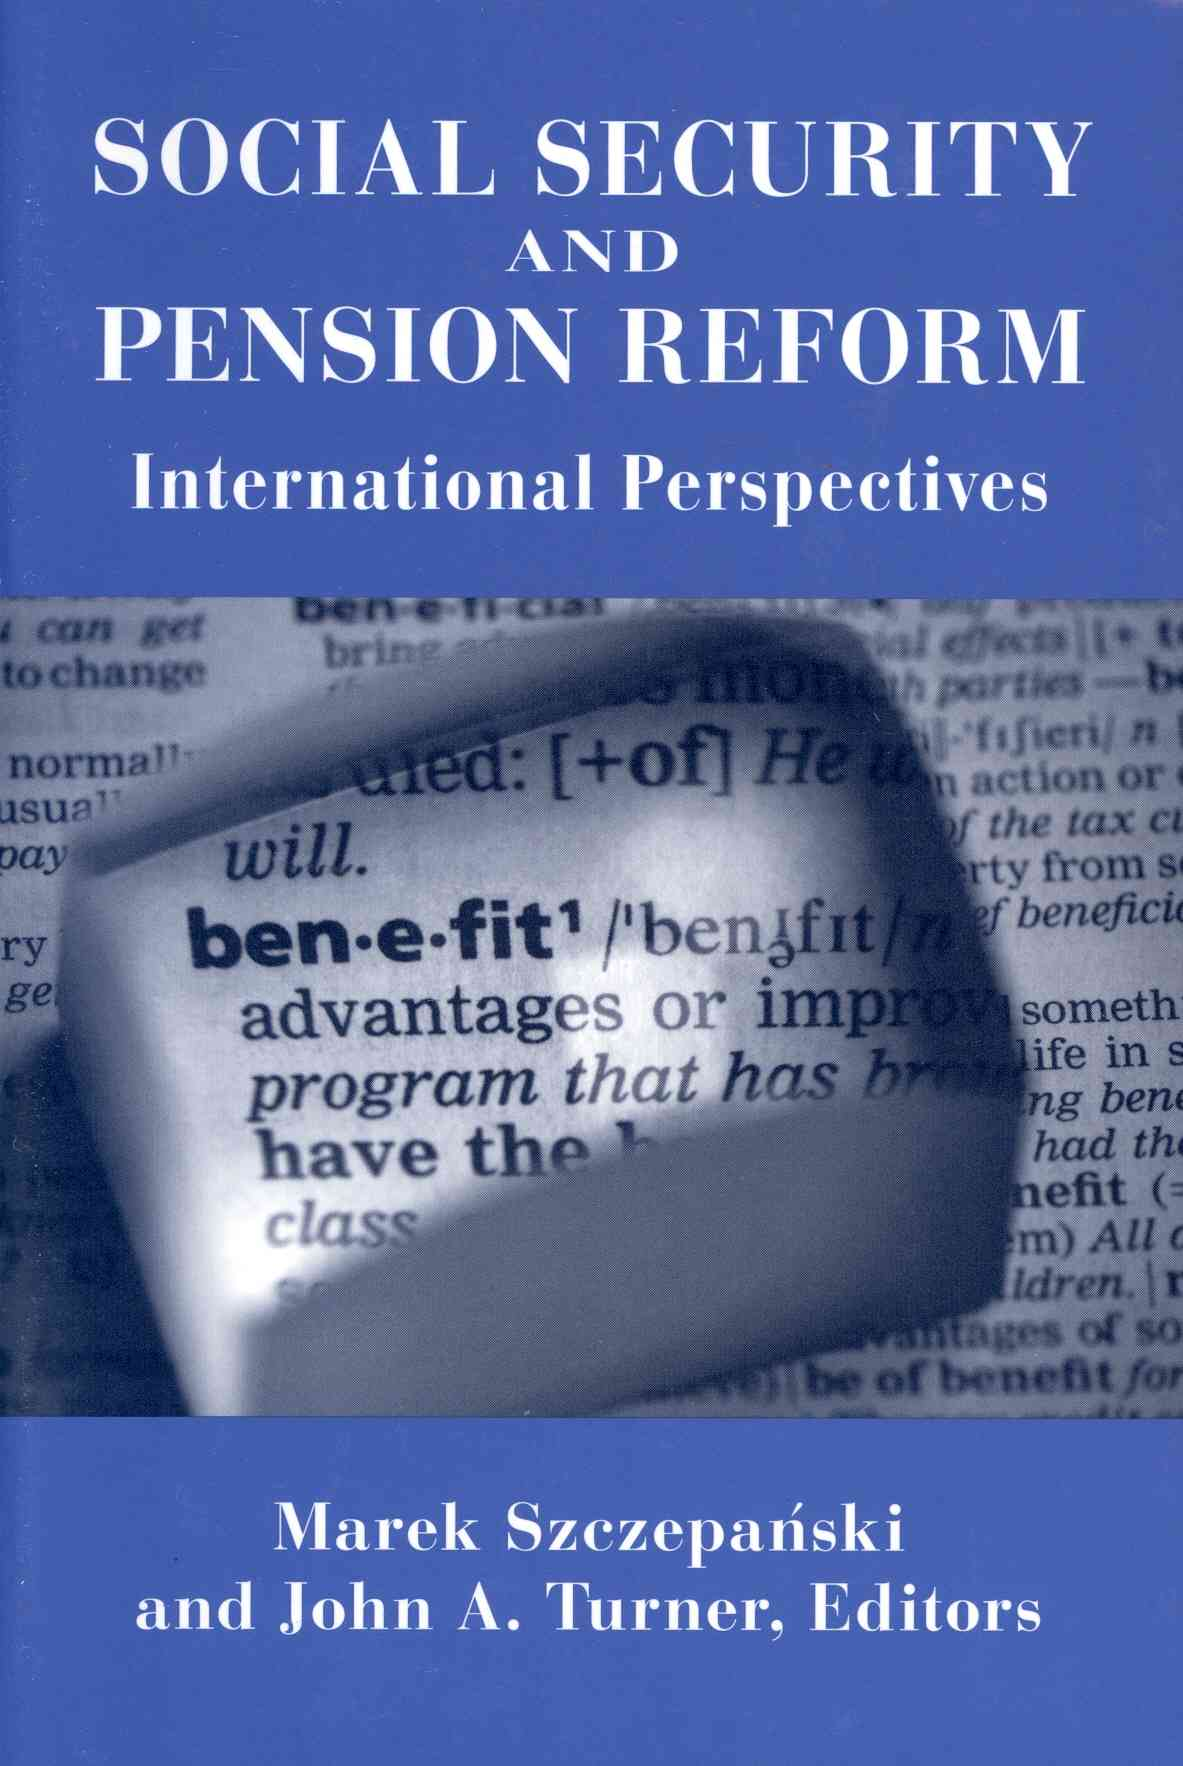 Social Security and Pension Reform By Barnow, Burt S. (EDT)/ Hobbie, Richard A. (EDT)